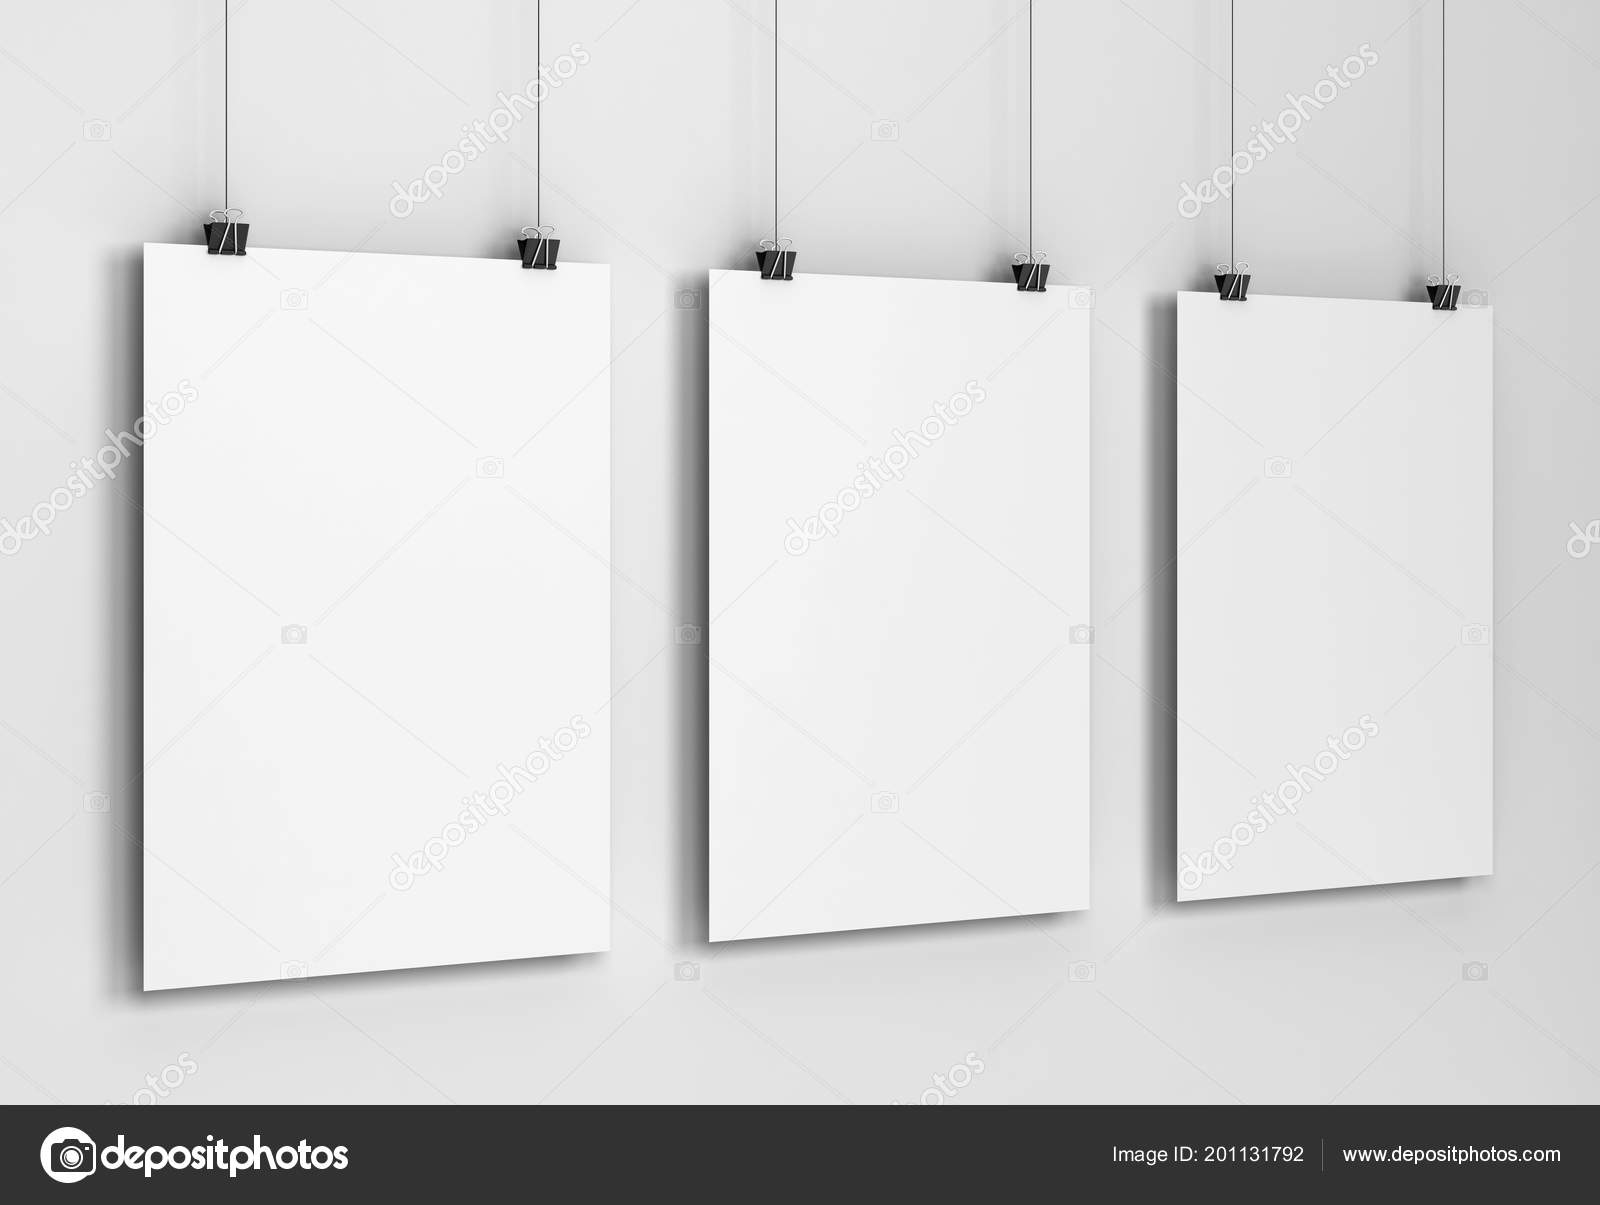 blank poster hanging wall mockup illustration gray background